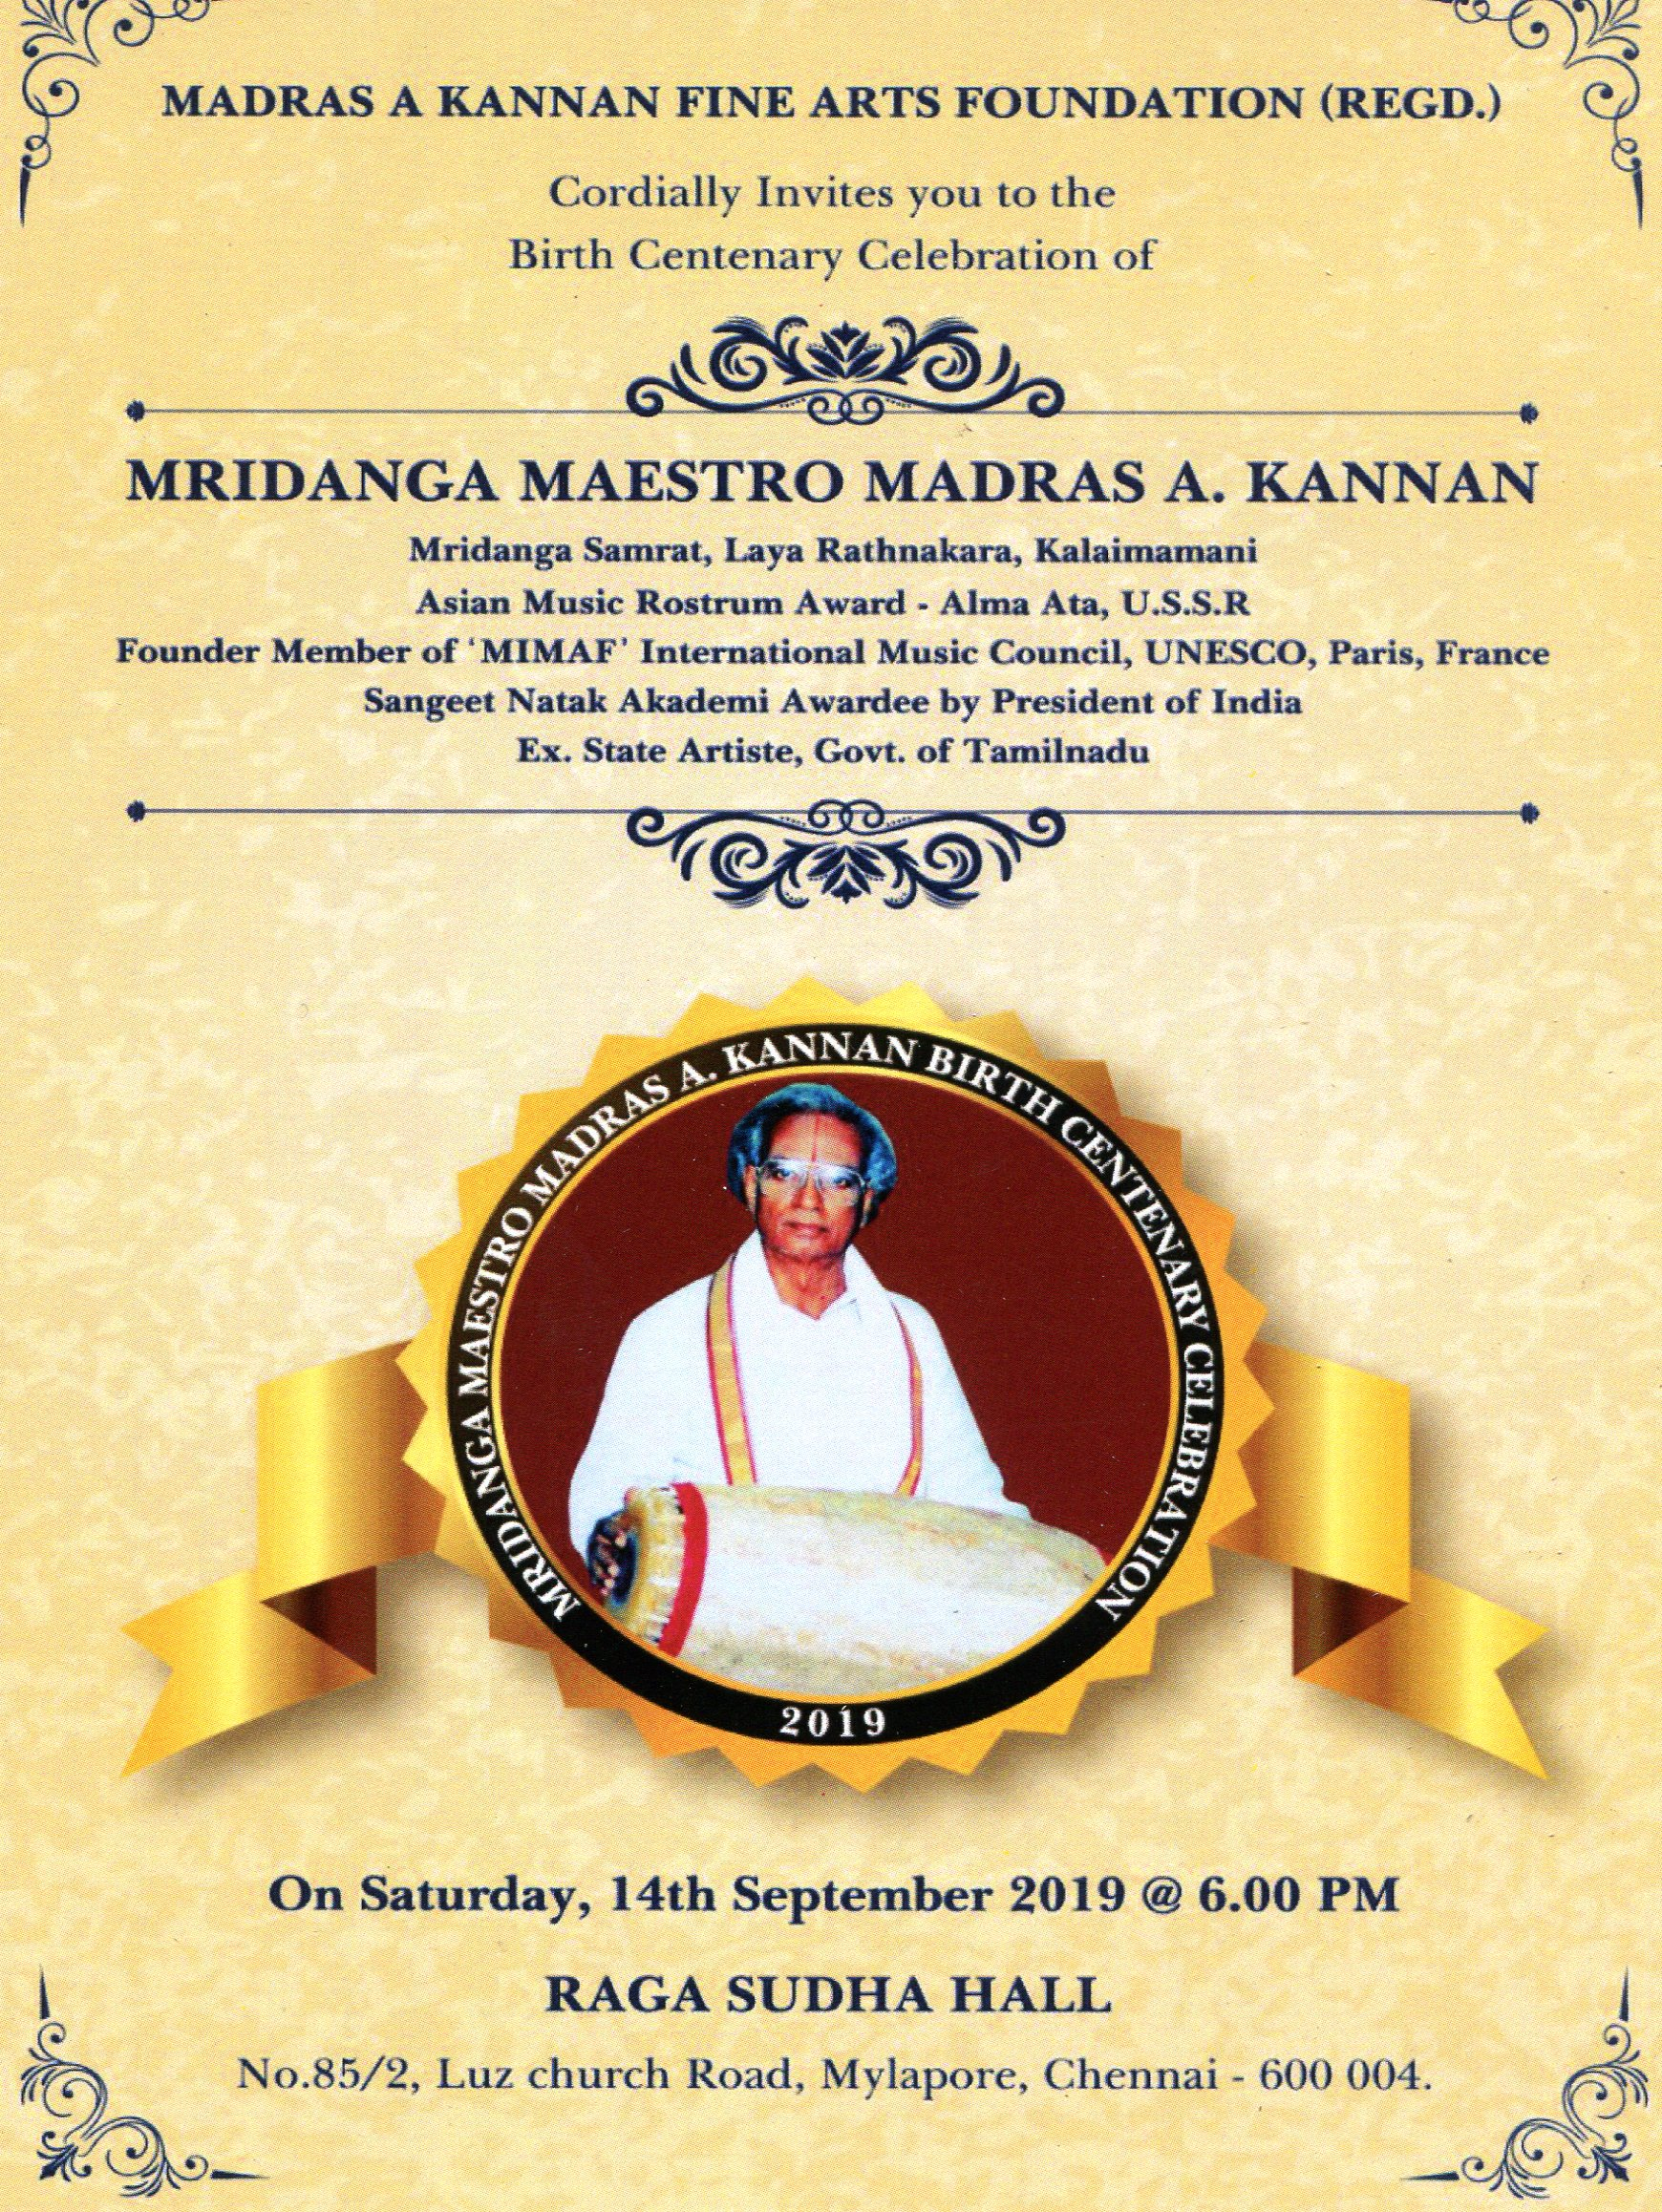 Madras a Kannan Fine Arts Foundation